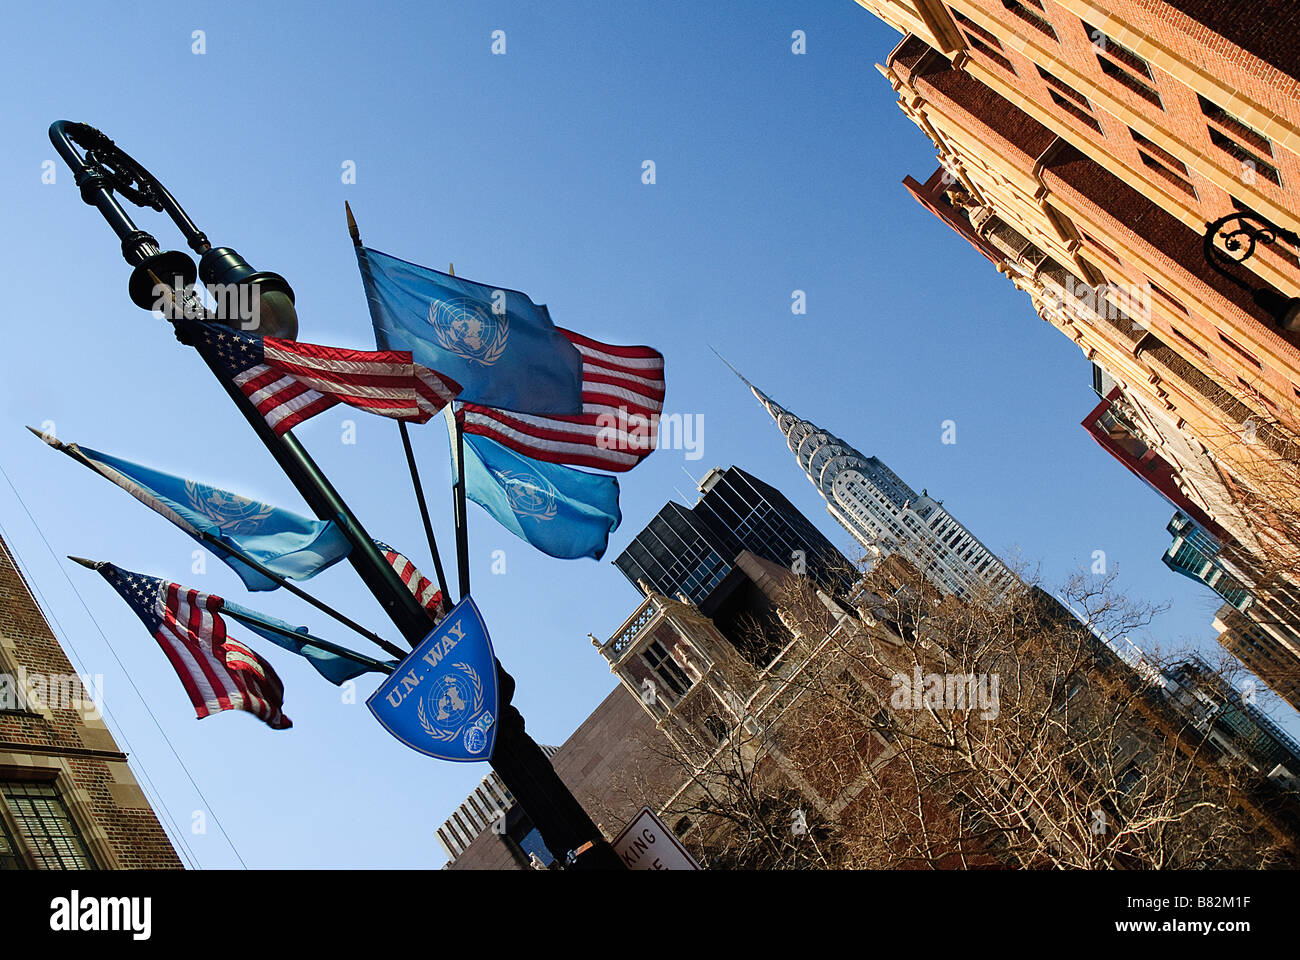 American And Un Flags Flying On Un Way Near The Chrysler Building In New York City